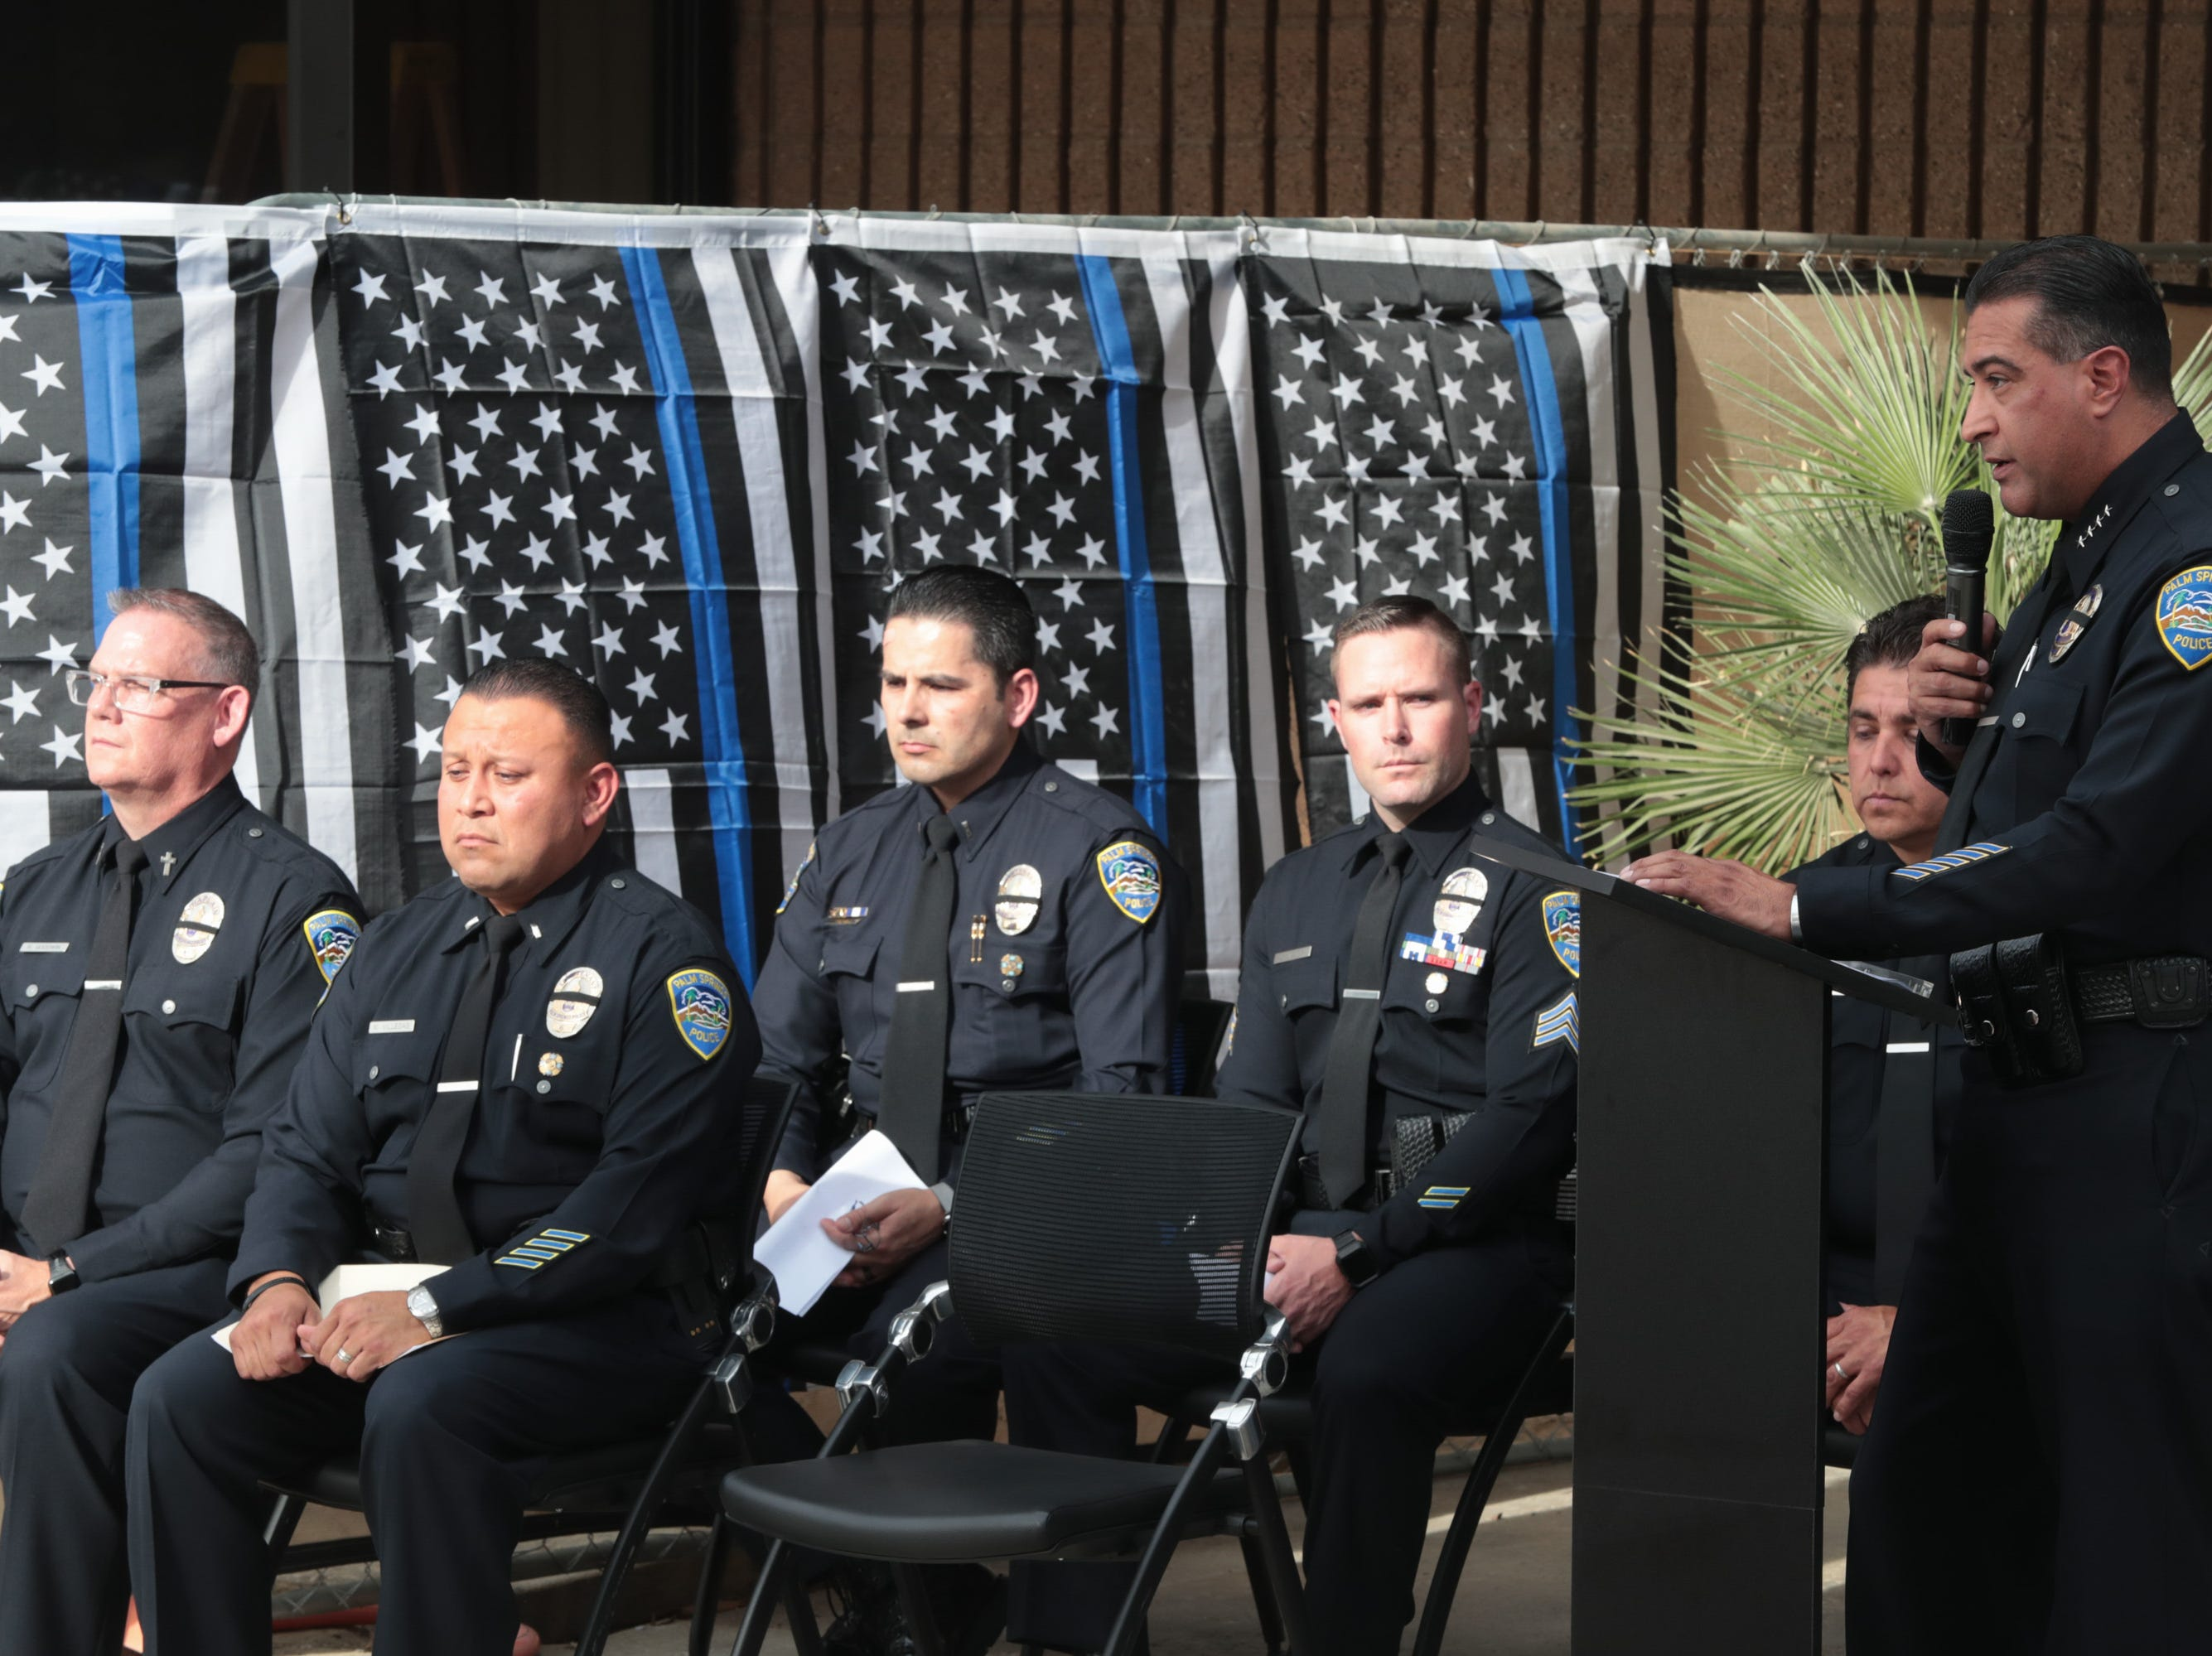 Police Chief Bryan Reyes makes closing remarks in a ceremony honoring fallen Palm Springs police officers on Peace Officers Memorial Day, Palm Springs, Calif., May 15, 2019.